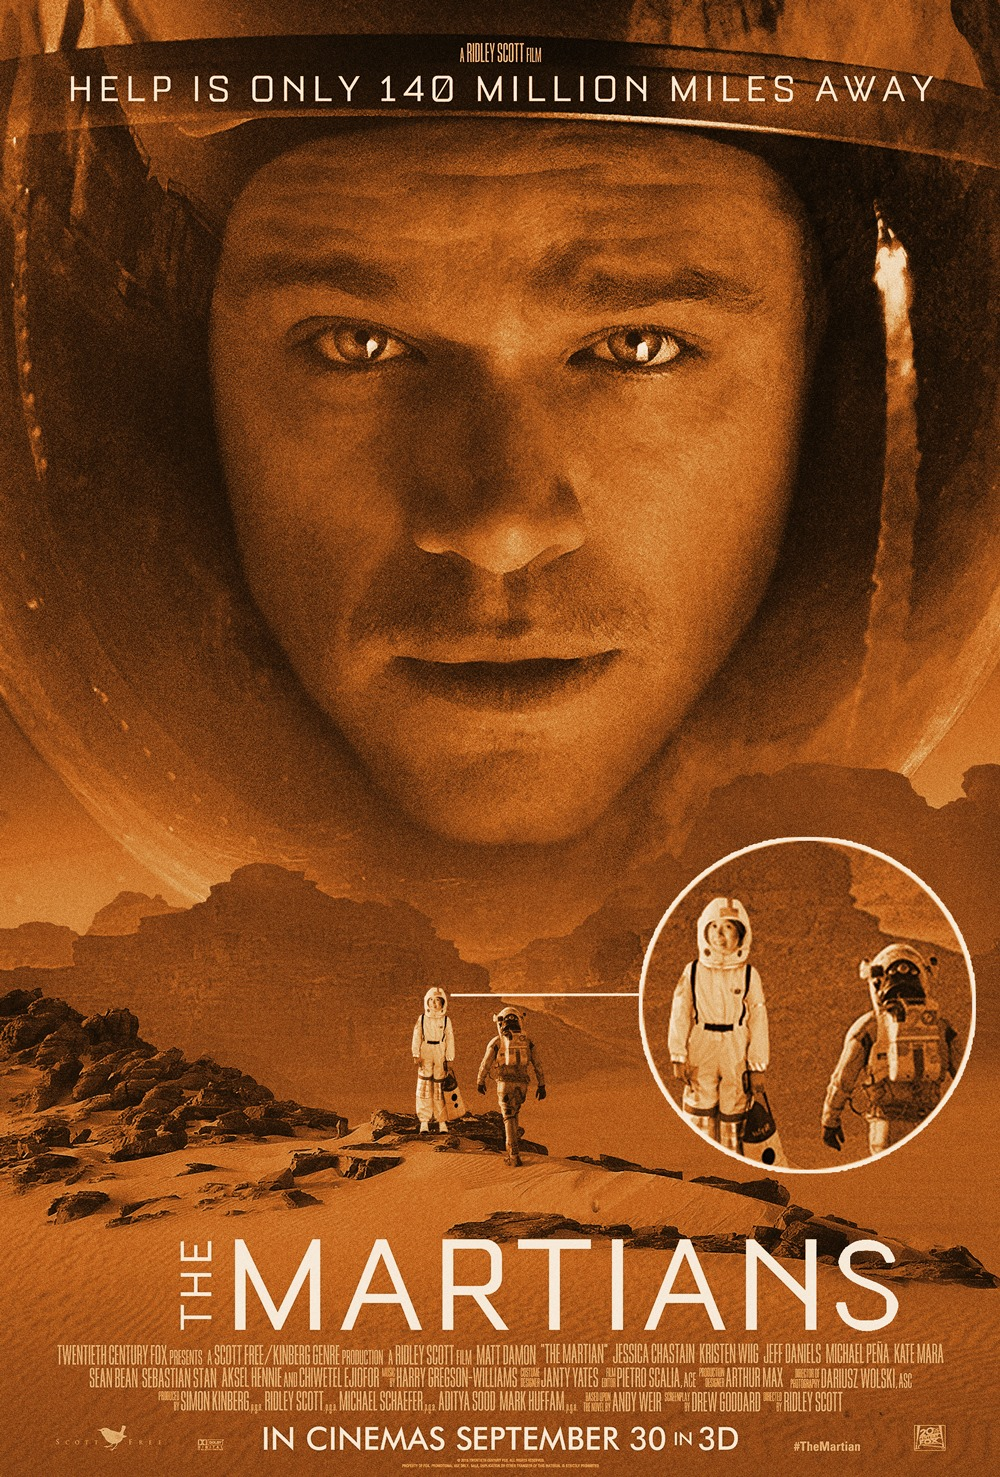 Mars is a lot of fun but Matt Damon and I get quite lonely up here.